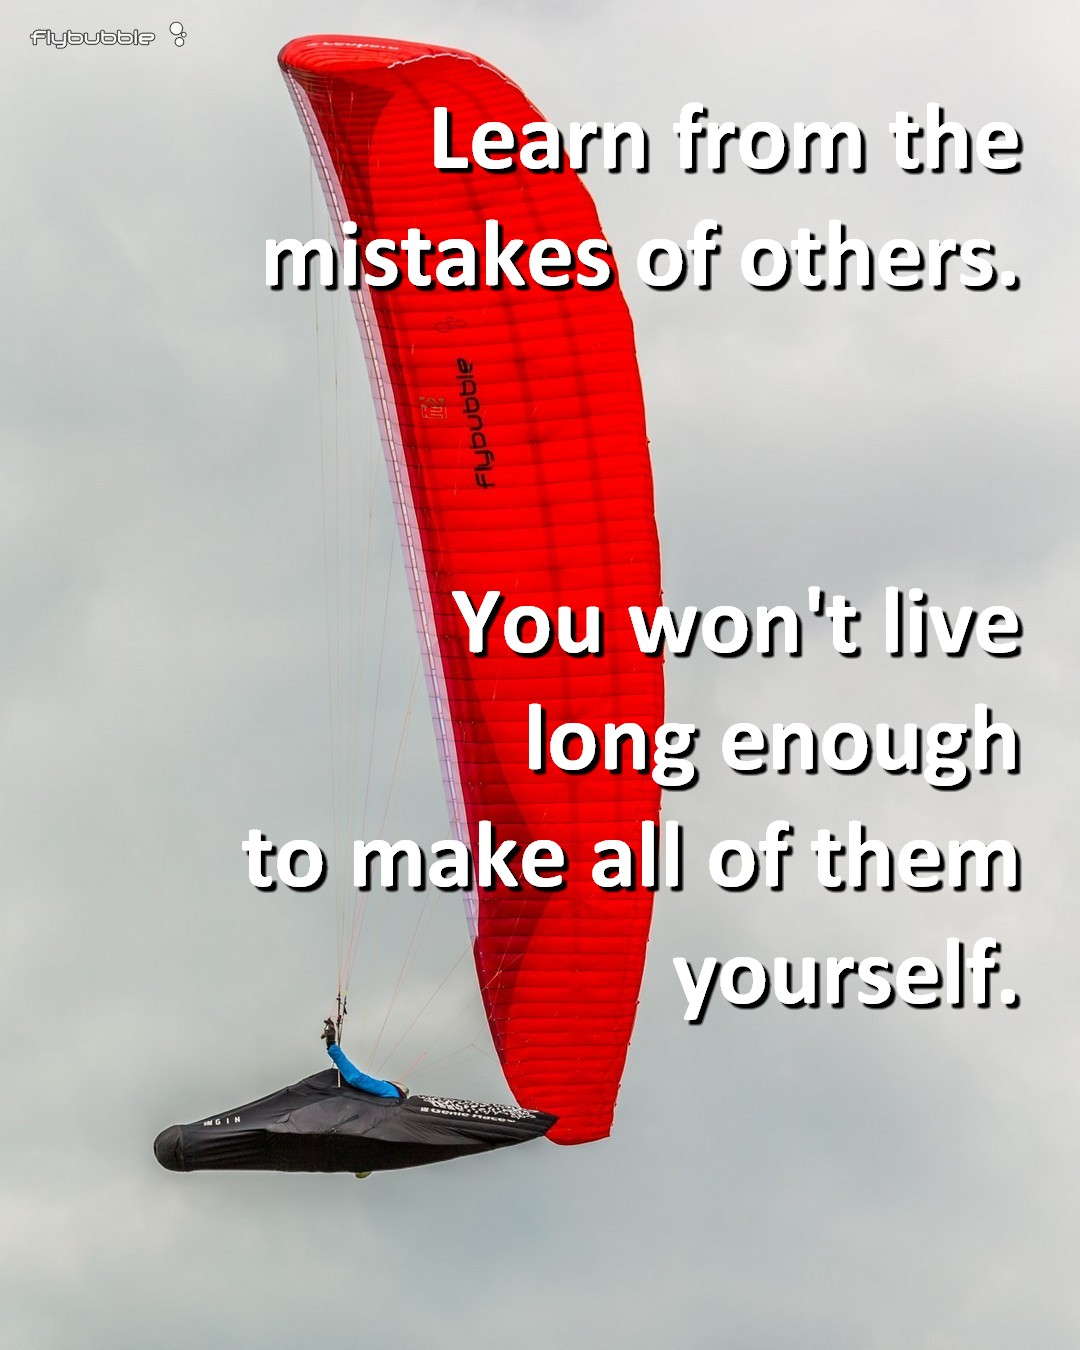 Learn from the mistakes of others. You won't live long enough to make all of them yourself.